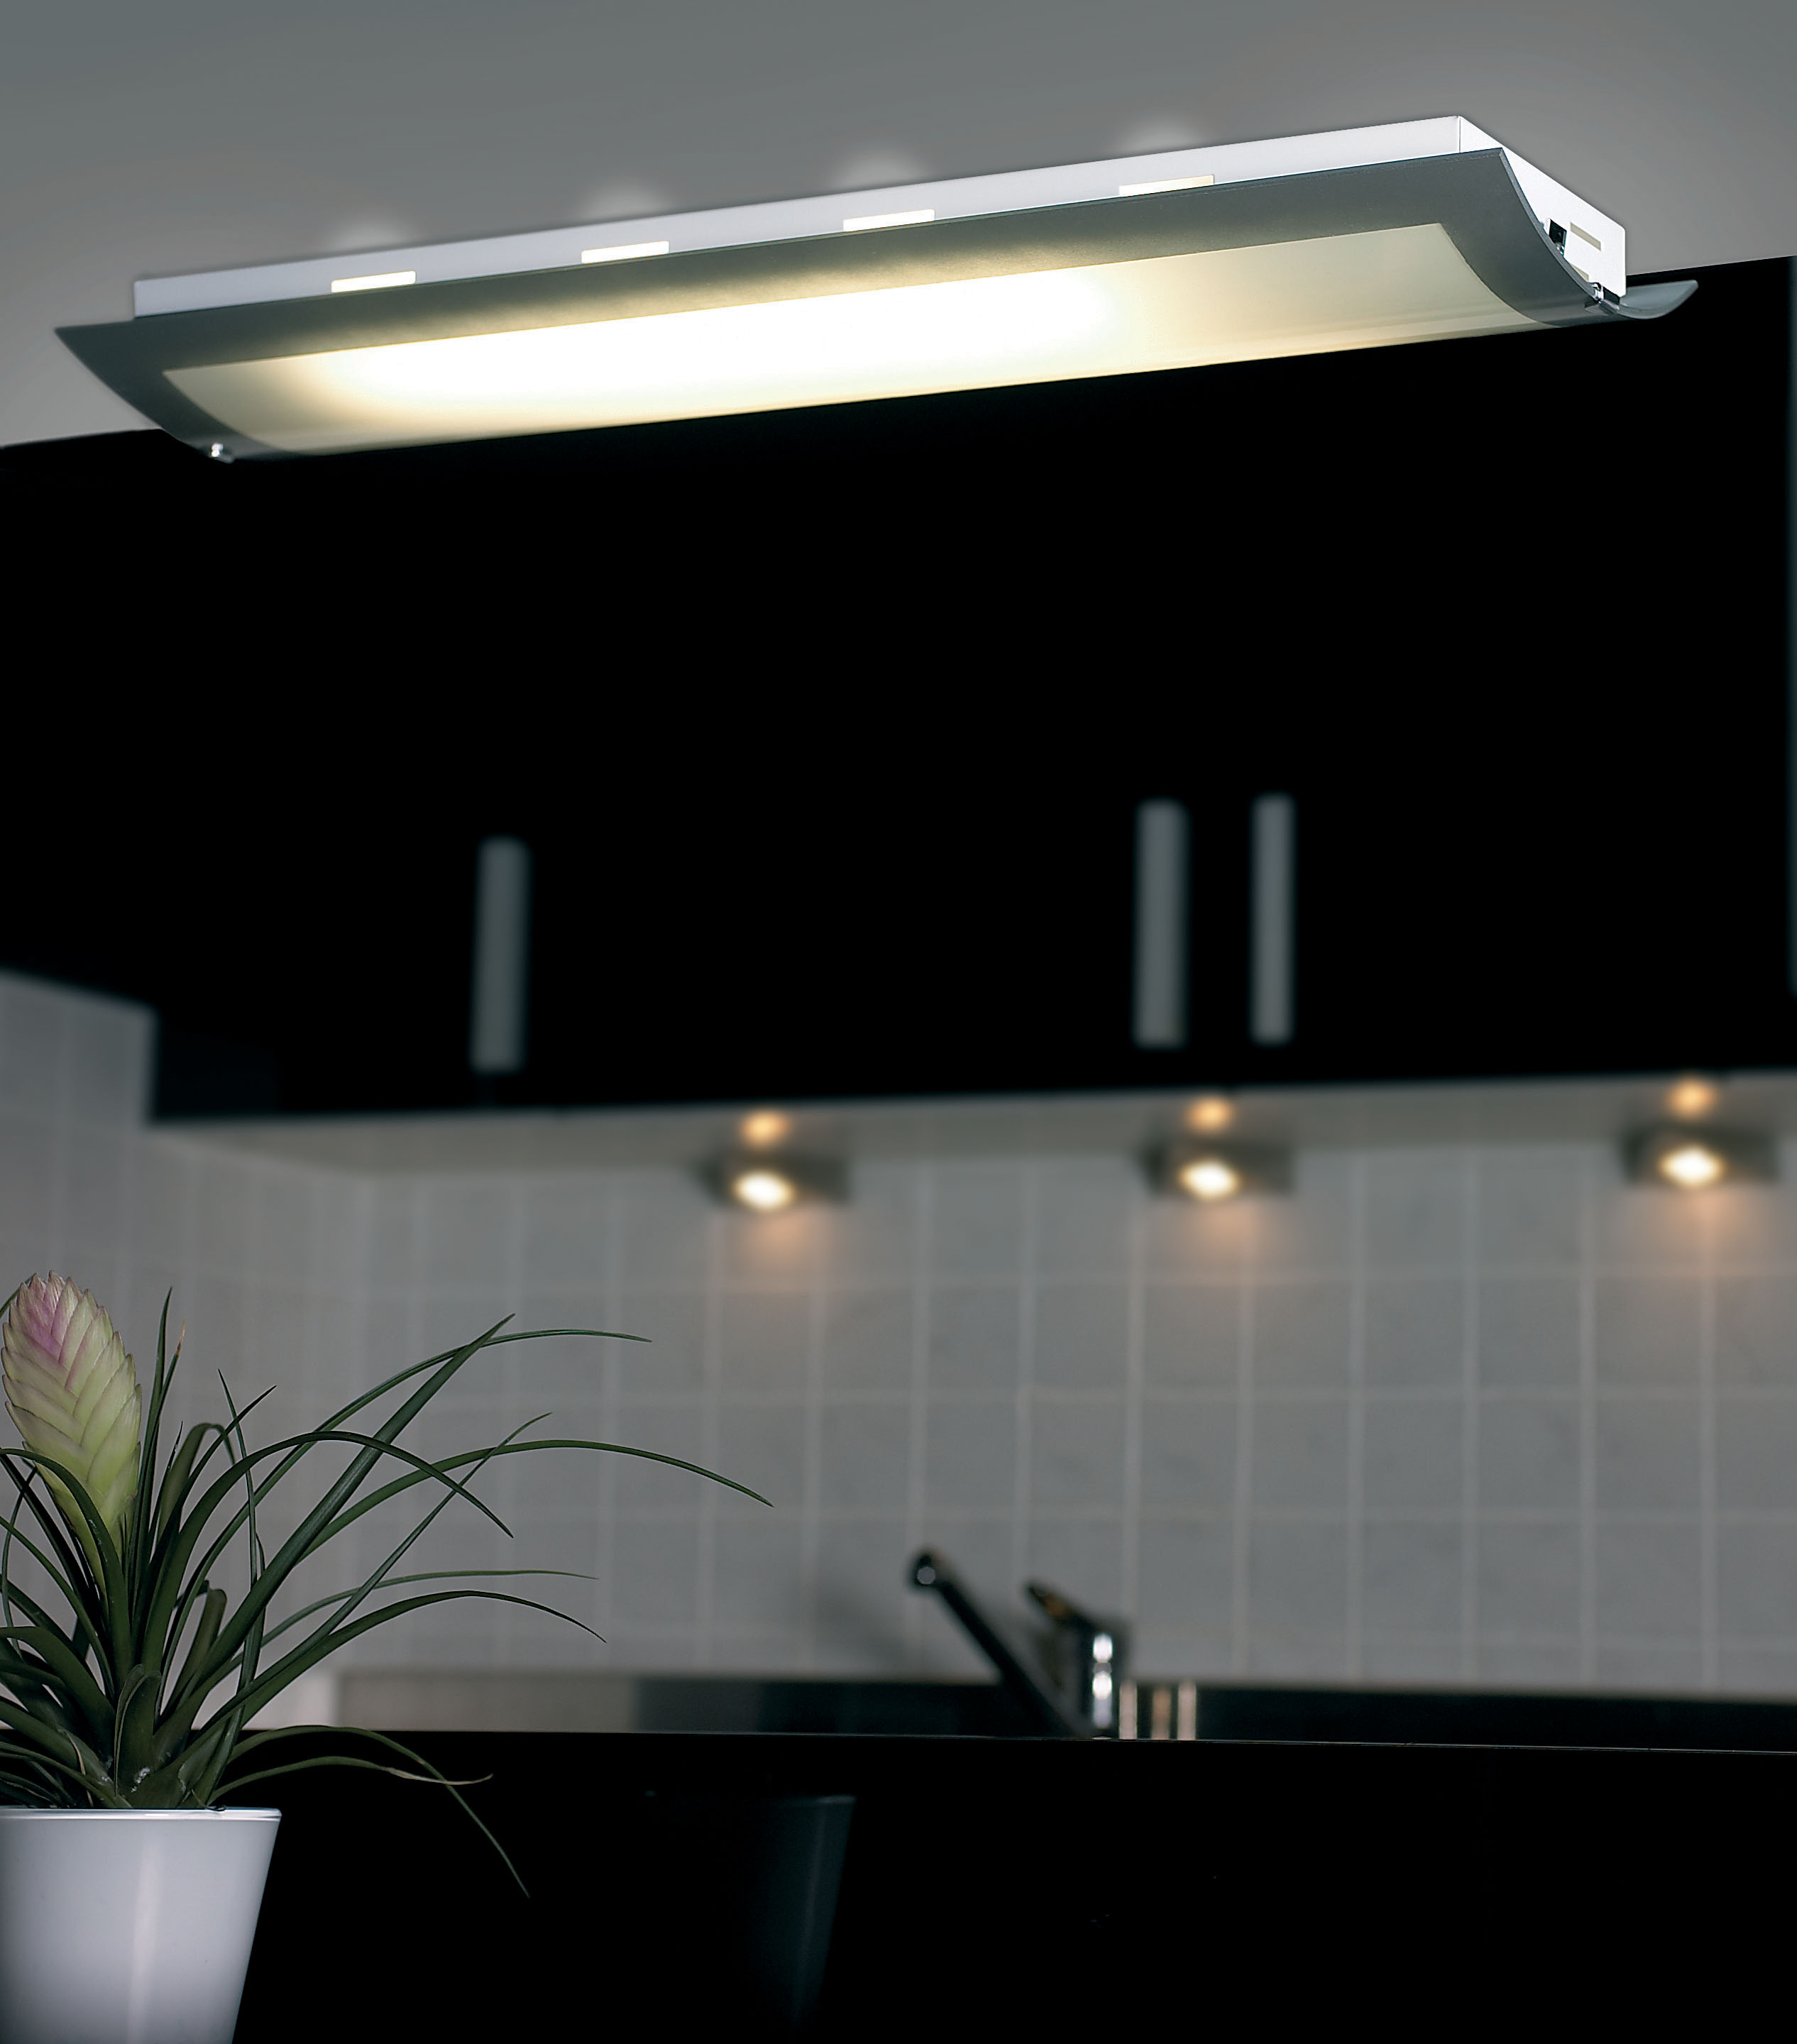 Uncategorized Led Ceiling Lights For Kitchen get large amount of illumination with led kitchen ceiling lights photo 2